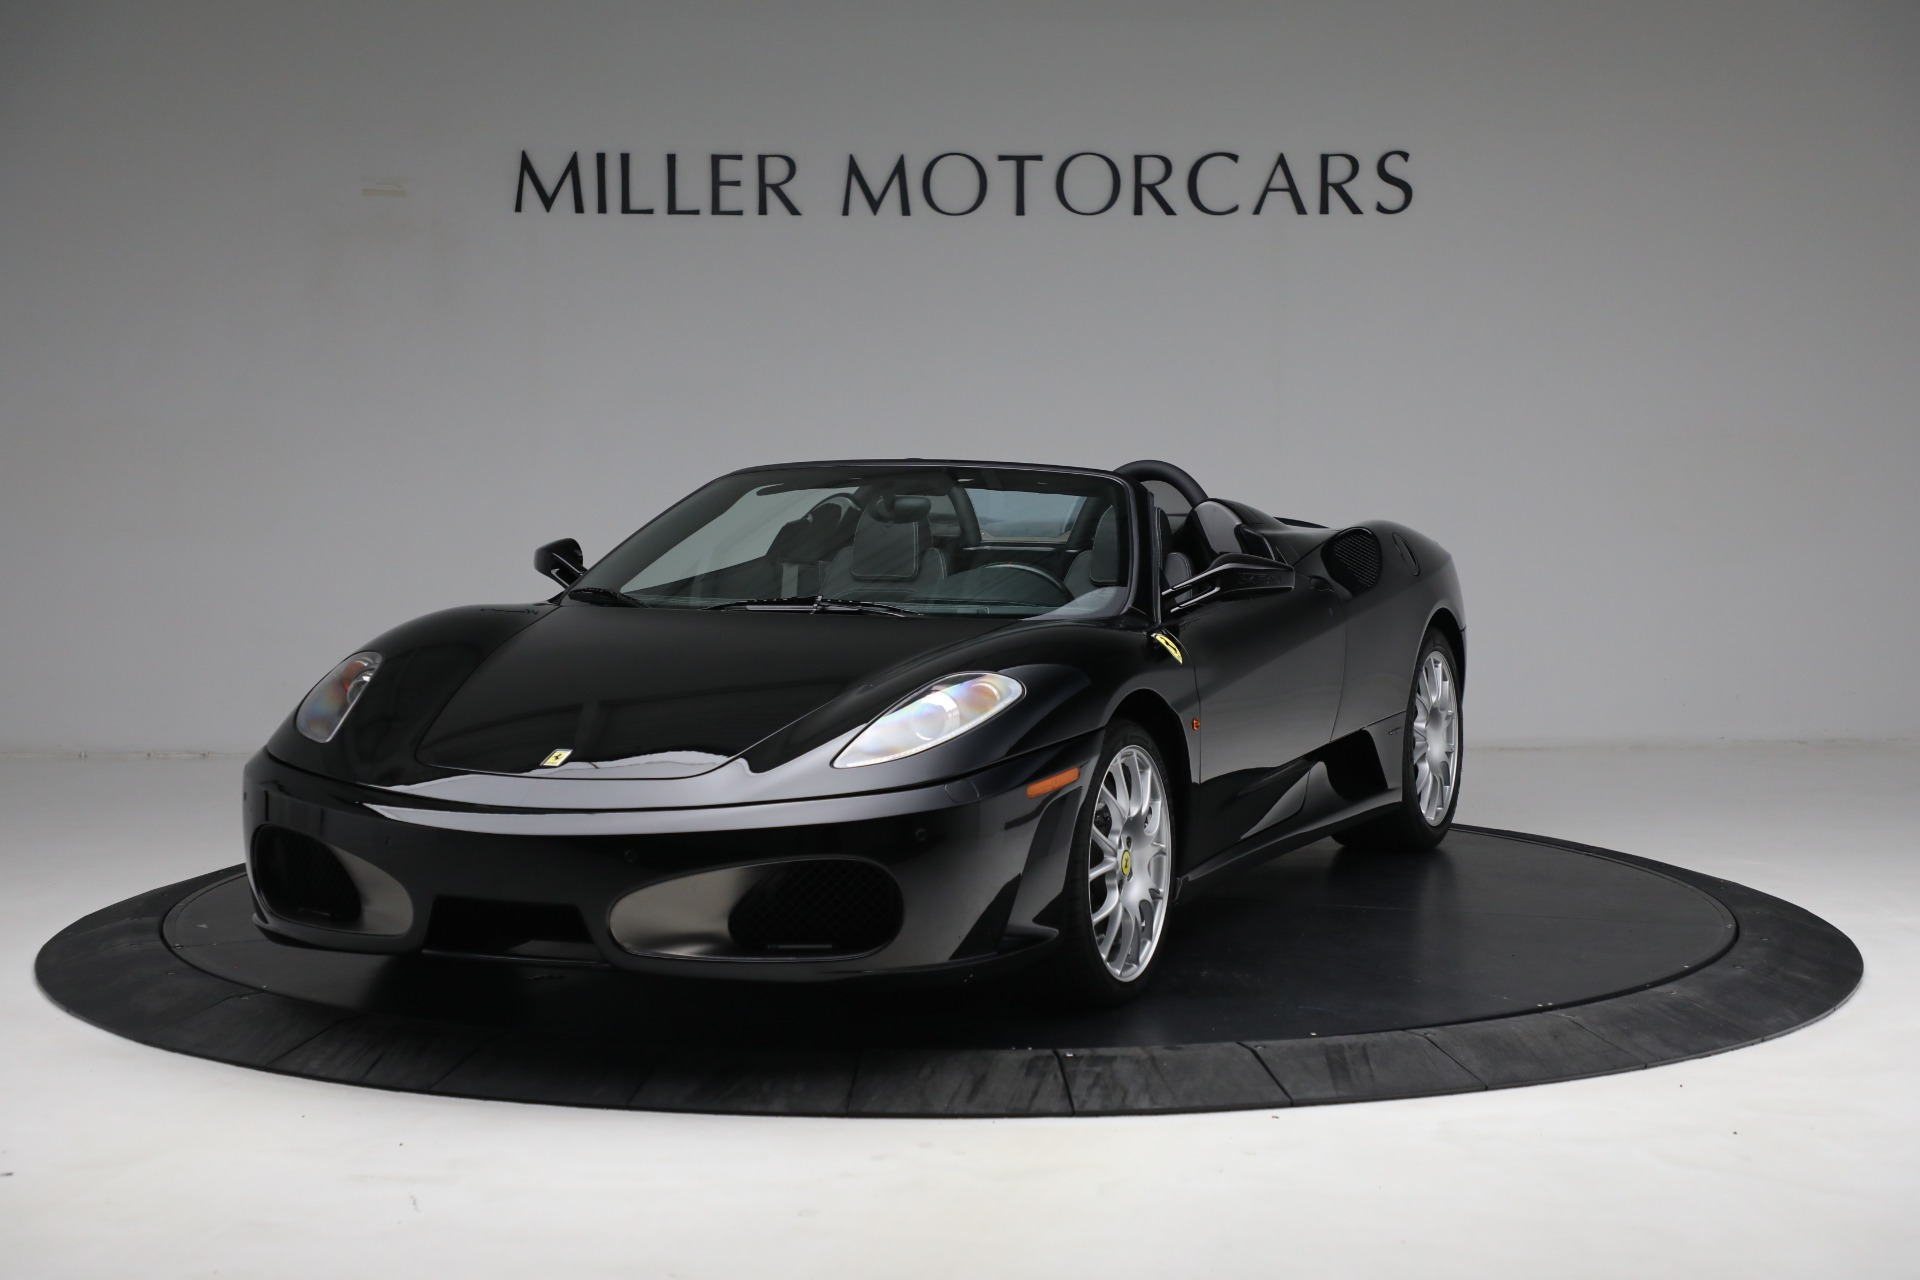 Used 2008 Ferrari F430 Spider for sale $159,900 at Rolls-Royce Motor Cars Greenwich in Greenwich CT 06830 1